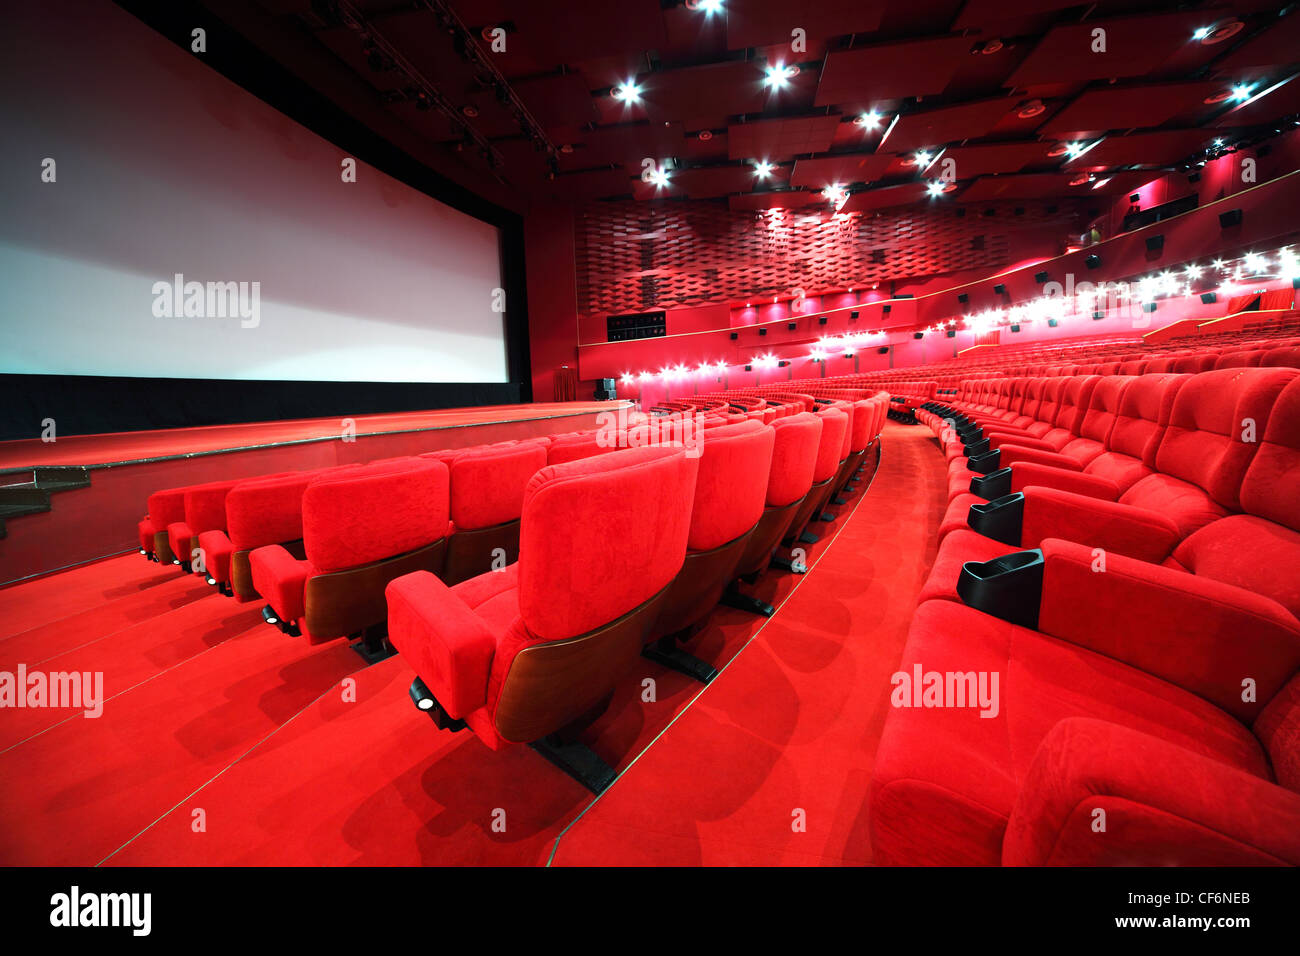 View from stairs on rows of comfortable red chairs in illuminate red room cinema - Stock Image